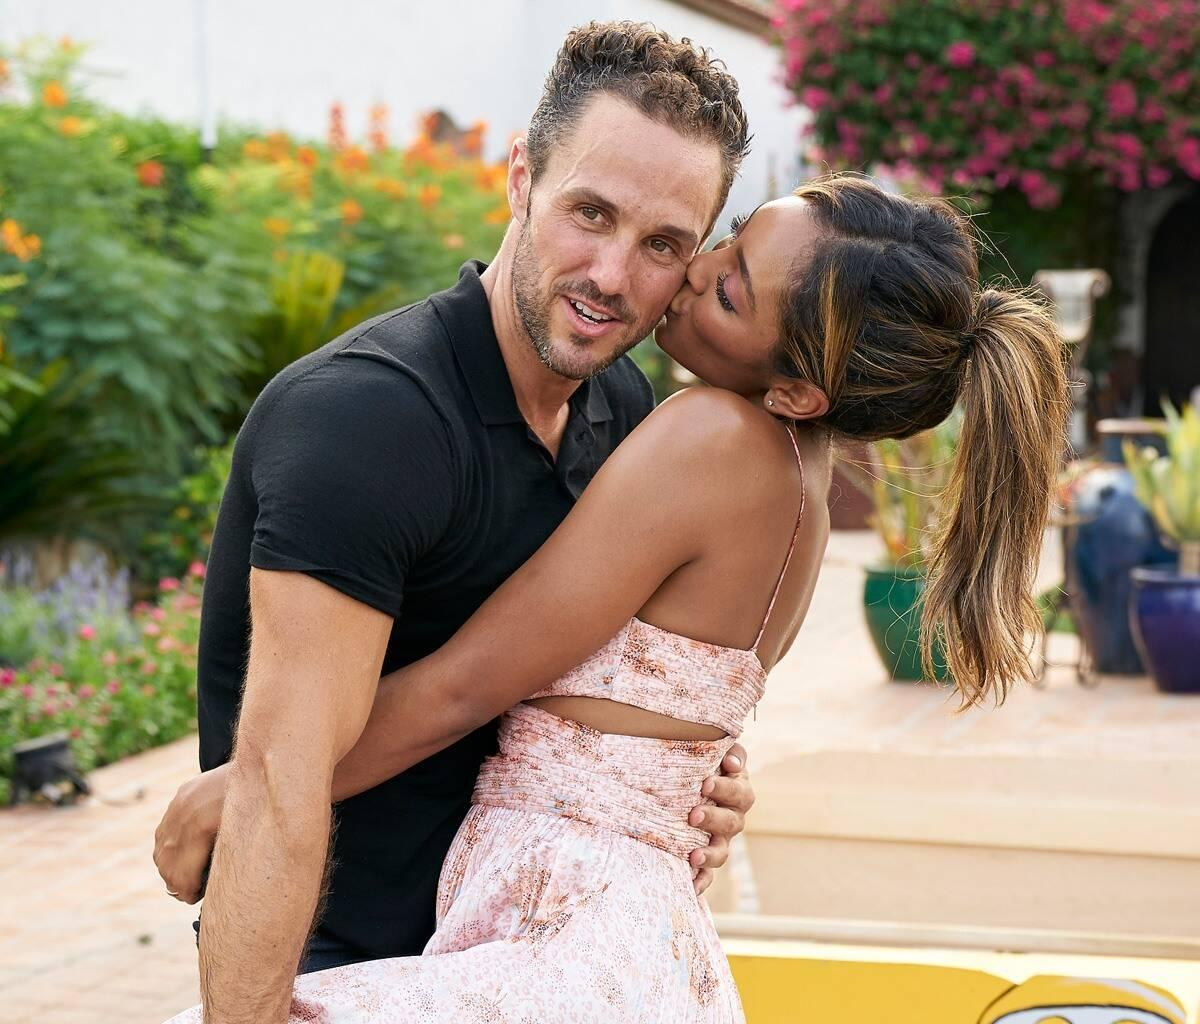 Tayshia Adams Fiance's Ex-Wife Sounds Off About Their Past Relationship And If He Joined The Bachelorette For The Right Reasons